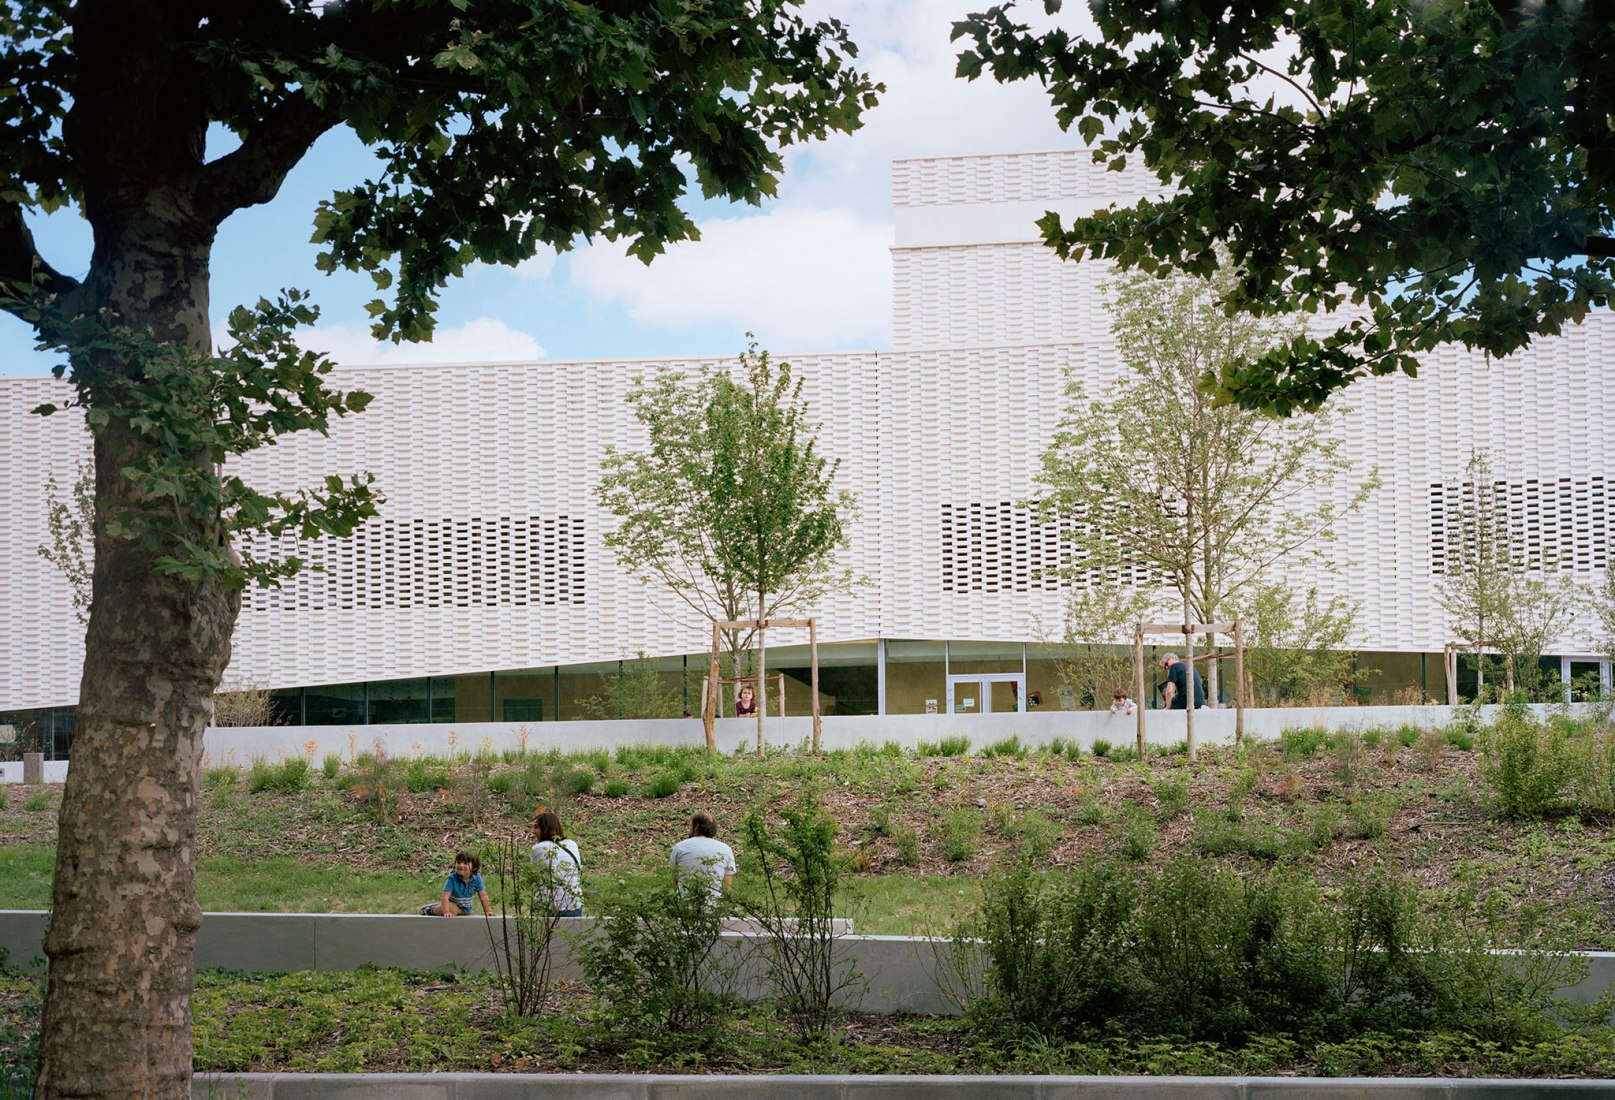 Exterior view. Theatre Jacques Carat by Ateliers O-S Architectes. Photograph by Cyrille Weiner